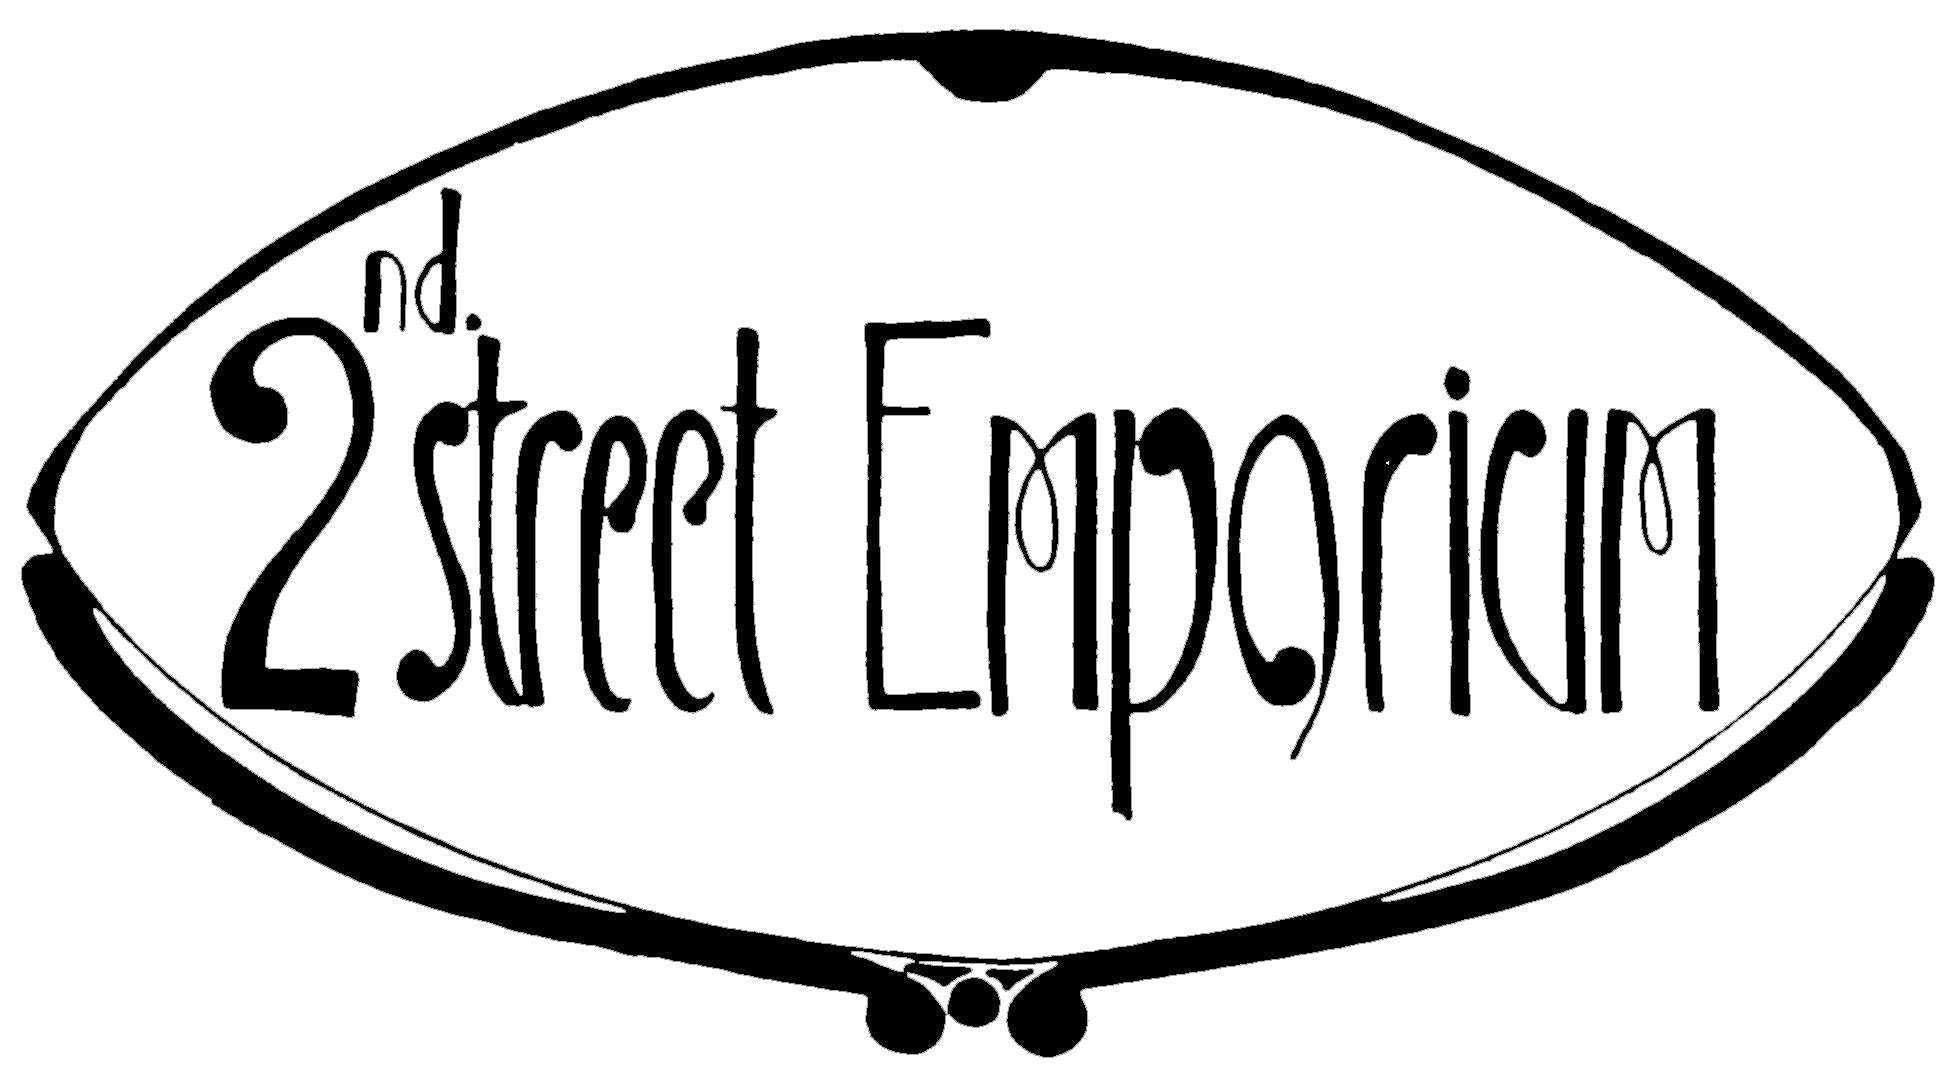 Second Street Emporium